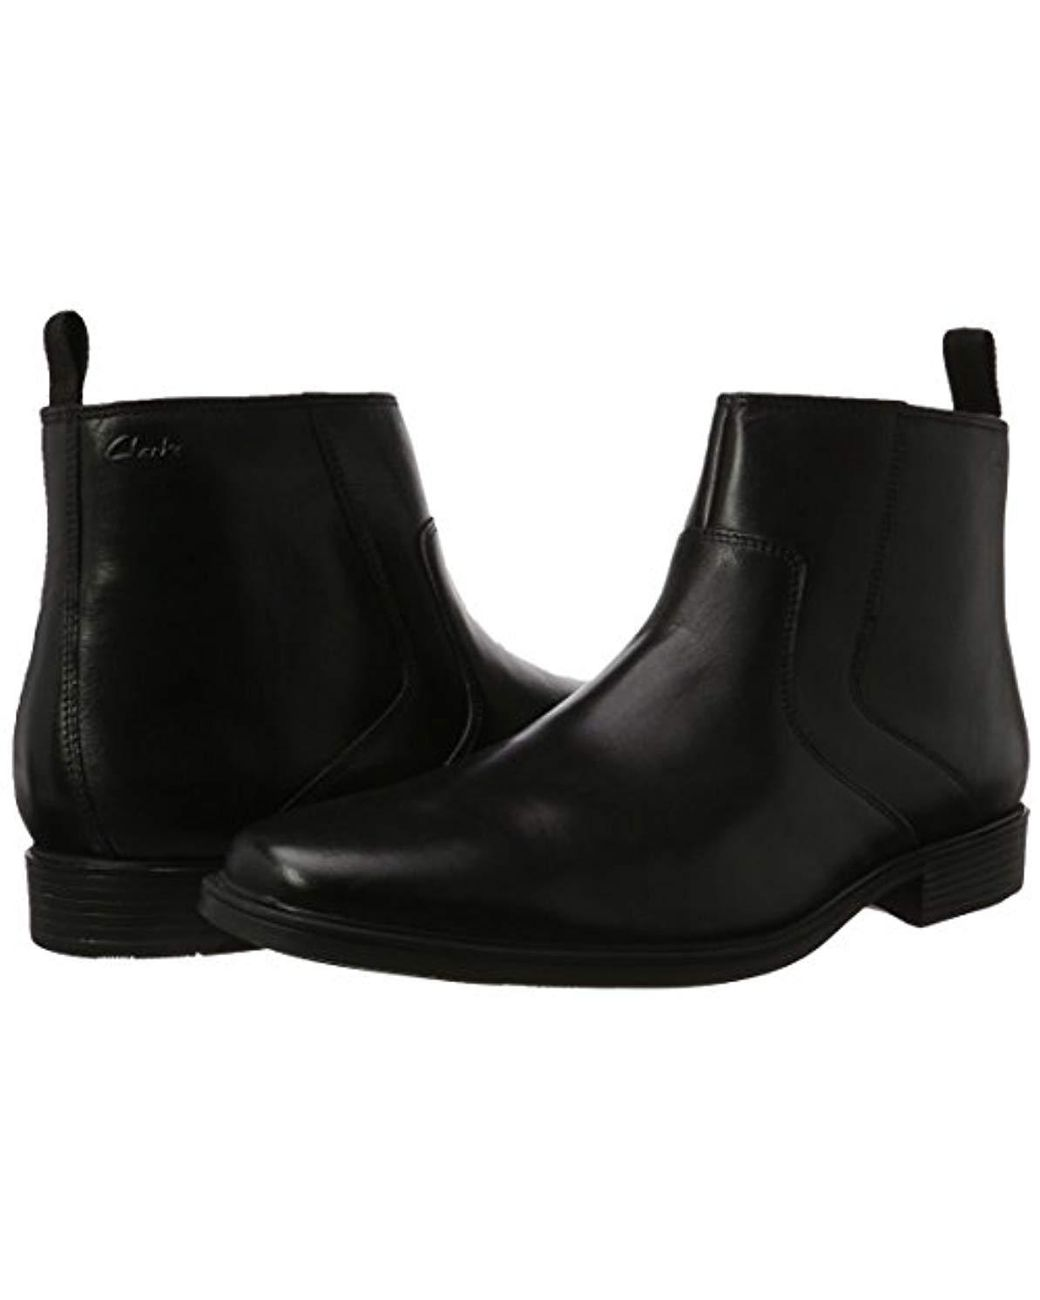 Clarks Trace Fall Botas Chelsea para Mujer